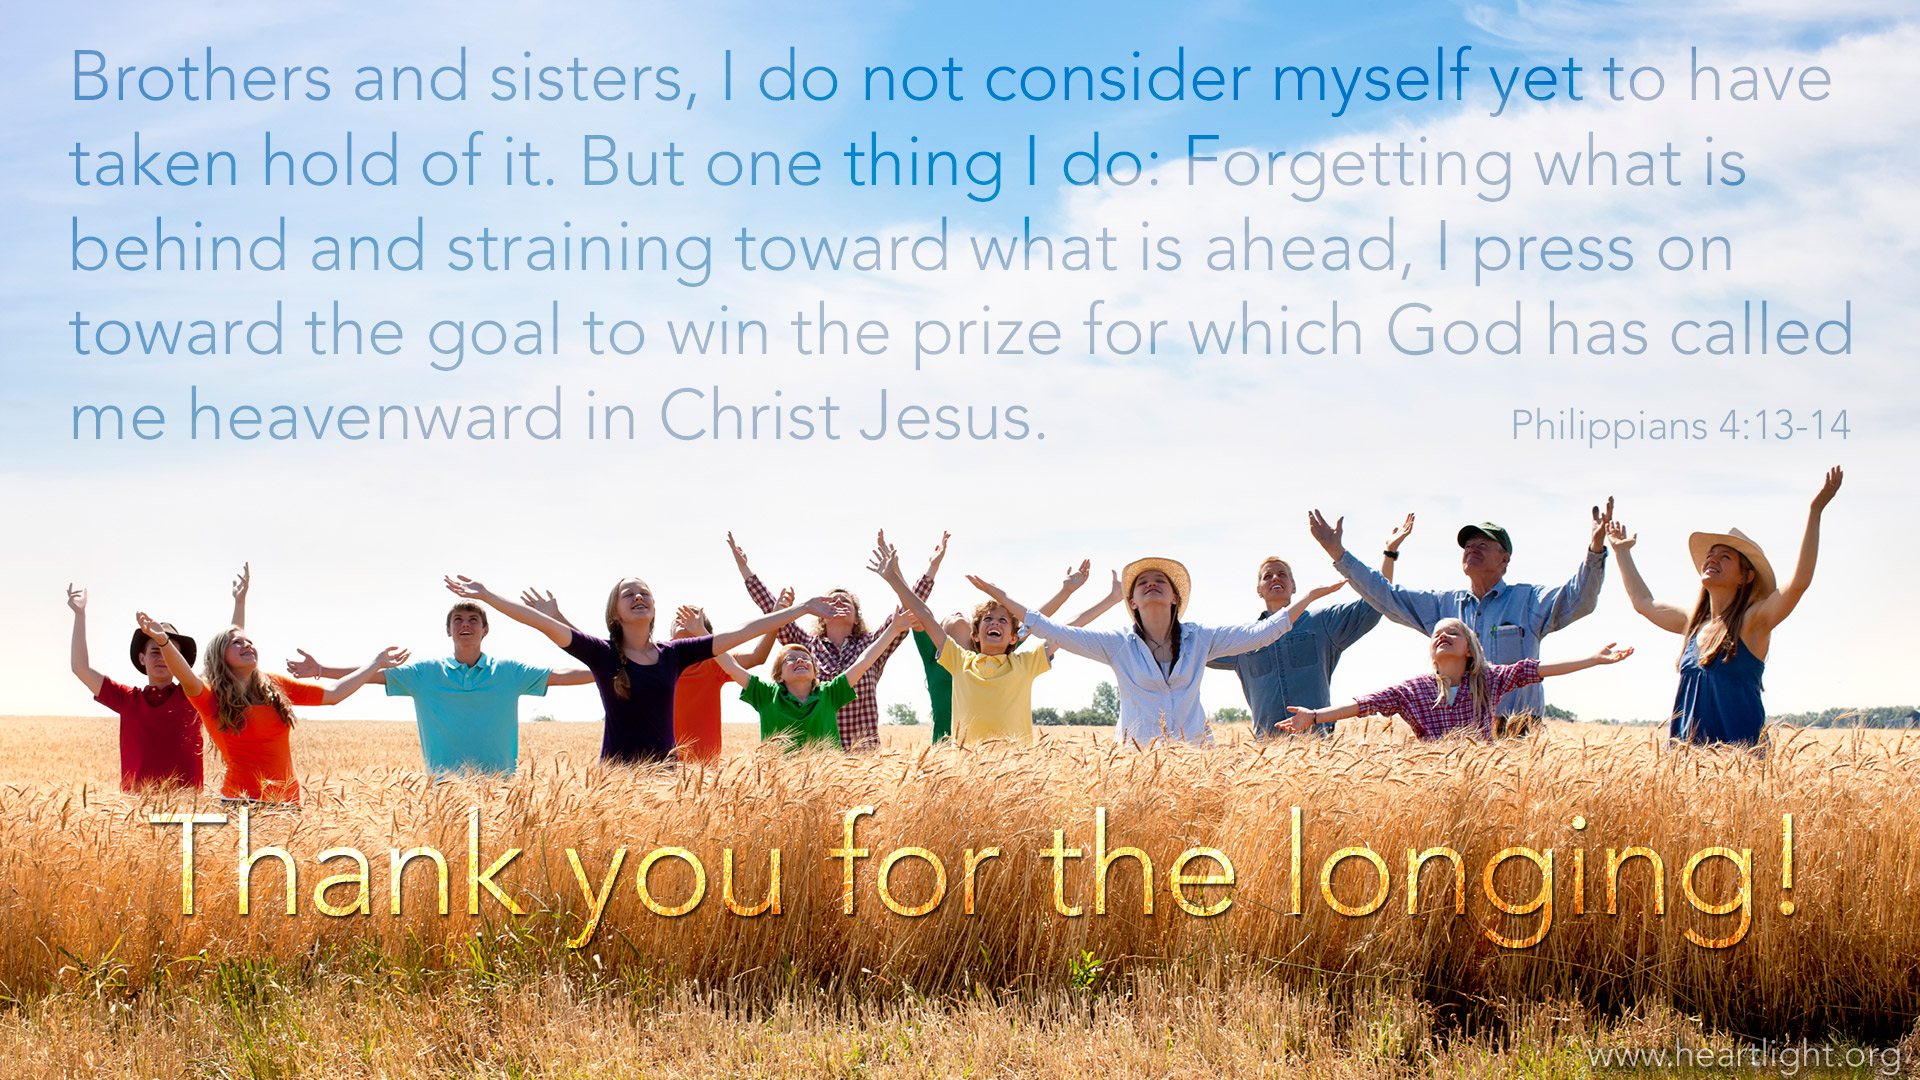 Thank You for the Longing PowerPoint Background of Philippians 1920x1080